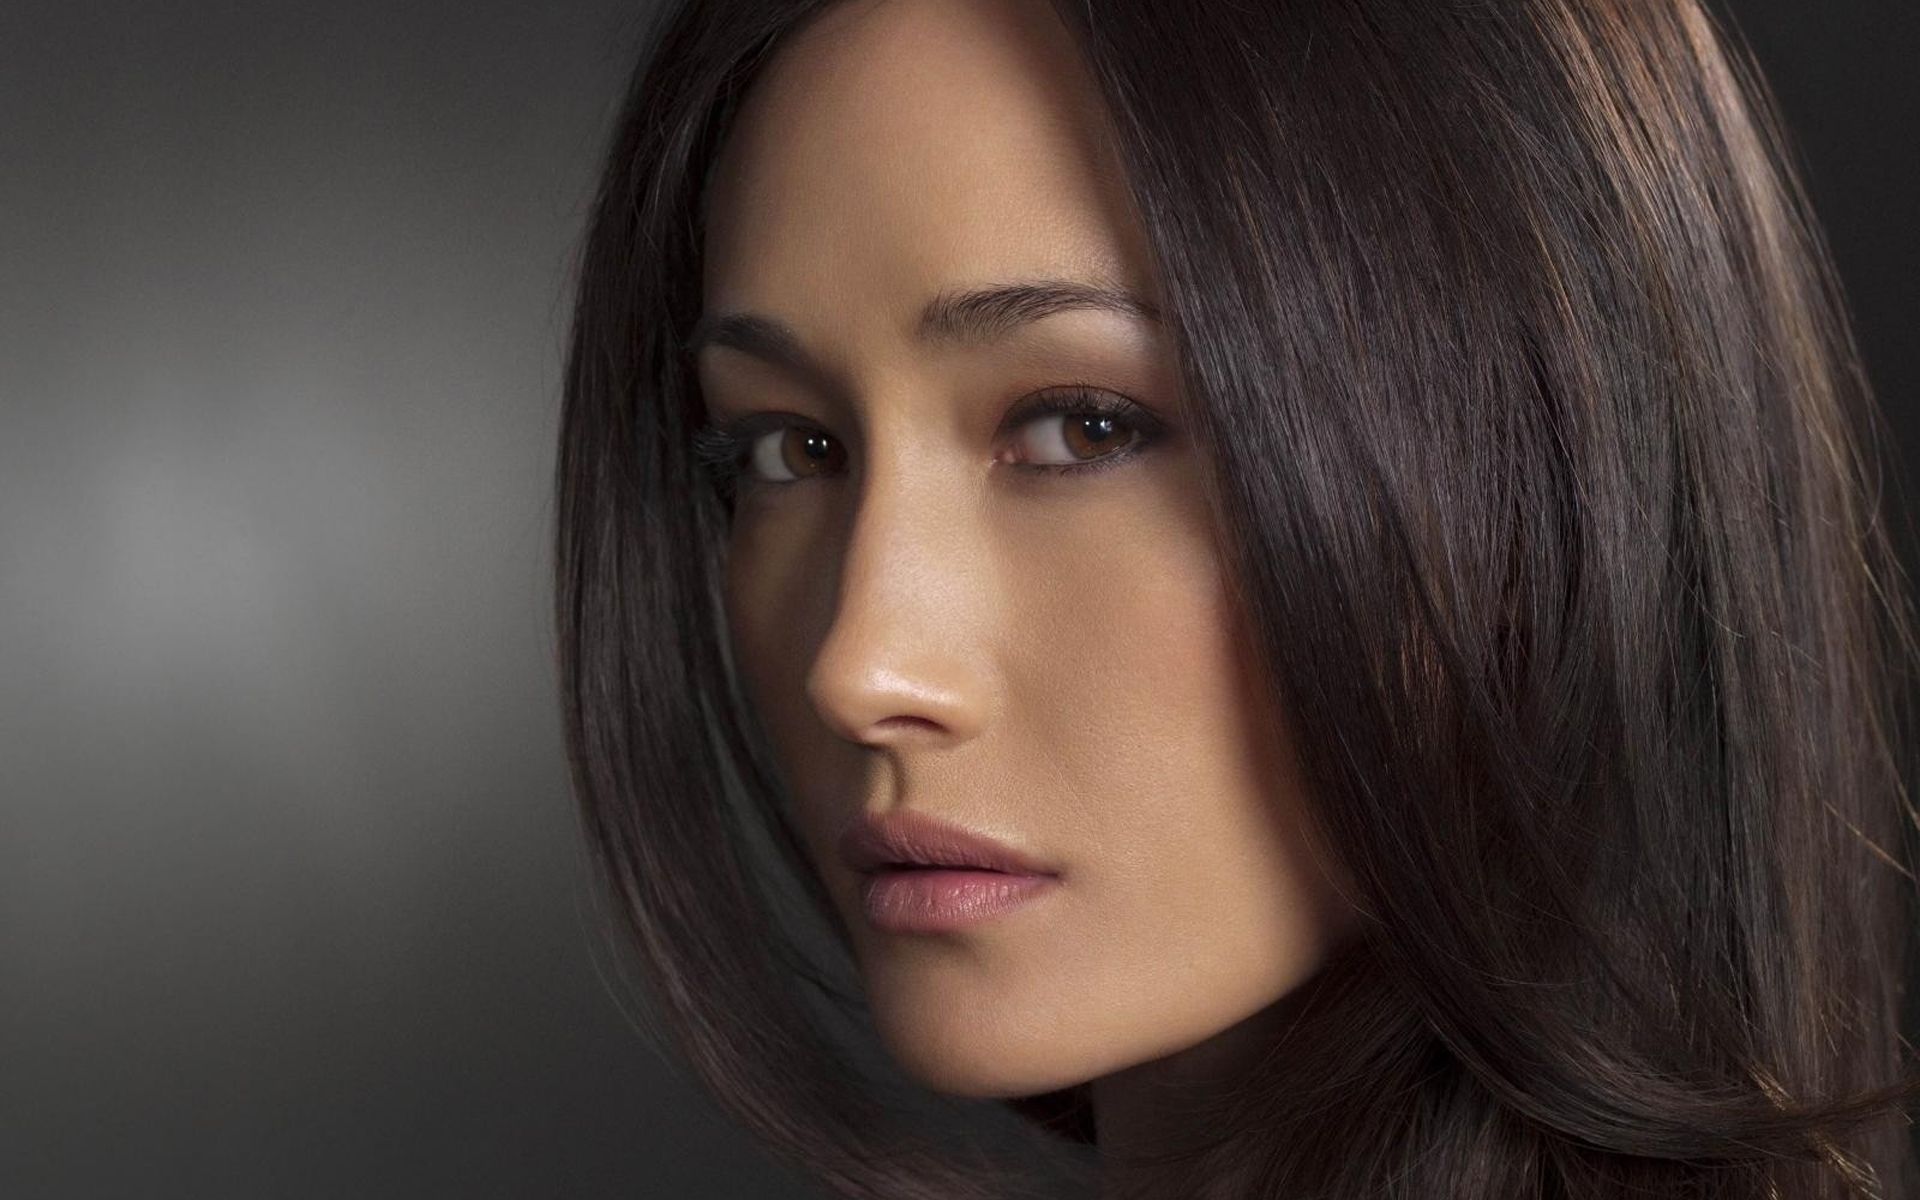 Maggie Q., star of the TV series Nikita, and Mililani High graduate, has made an appeal on behalf of less fortunate animals set to be killed Christmas Eve ...